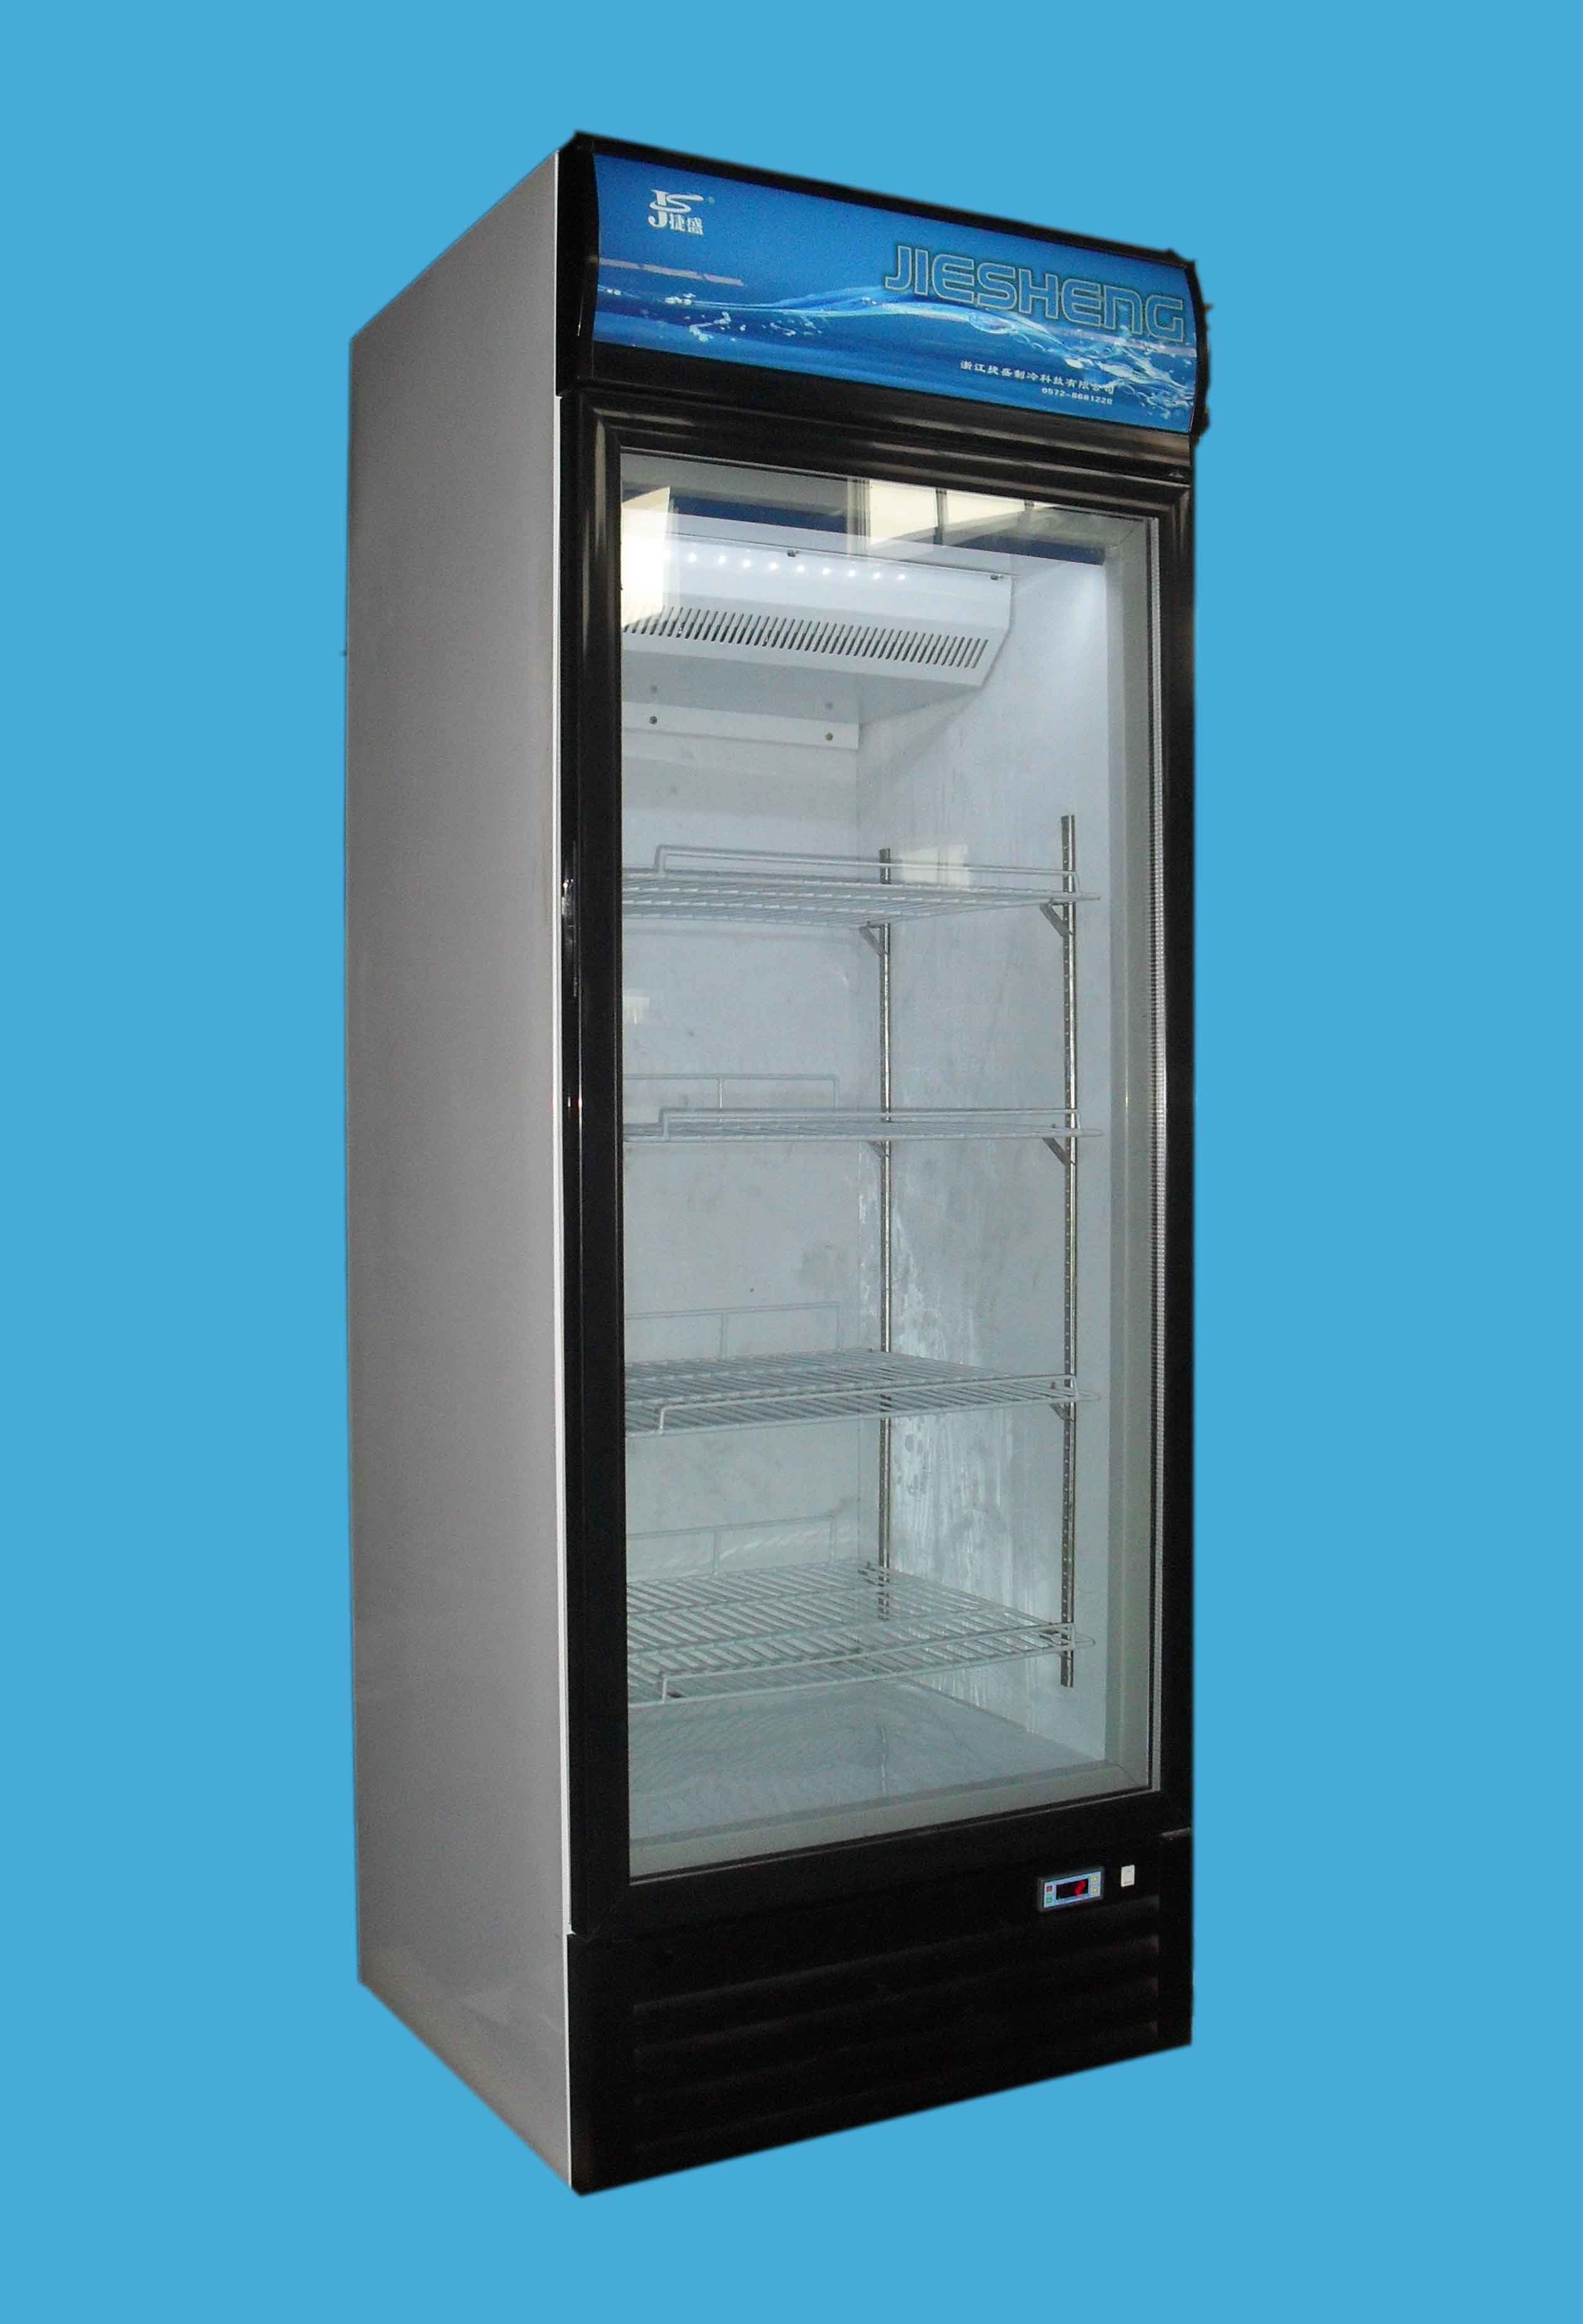 Refrigerator Repair Guide: How To Test the Temperature Control